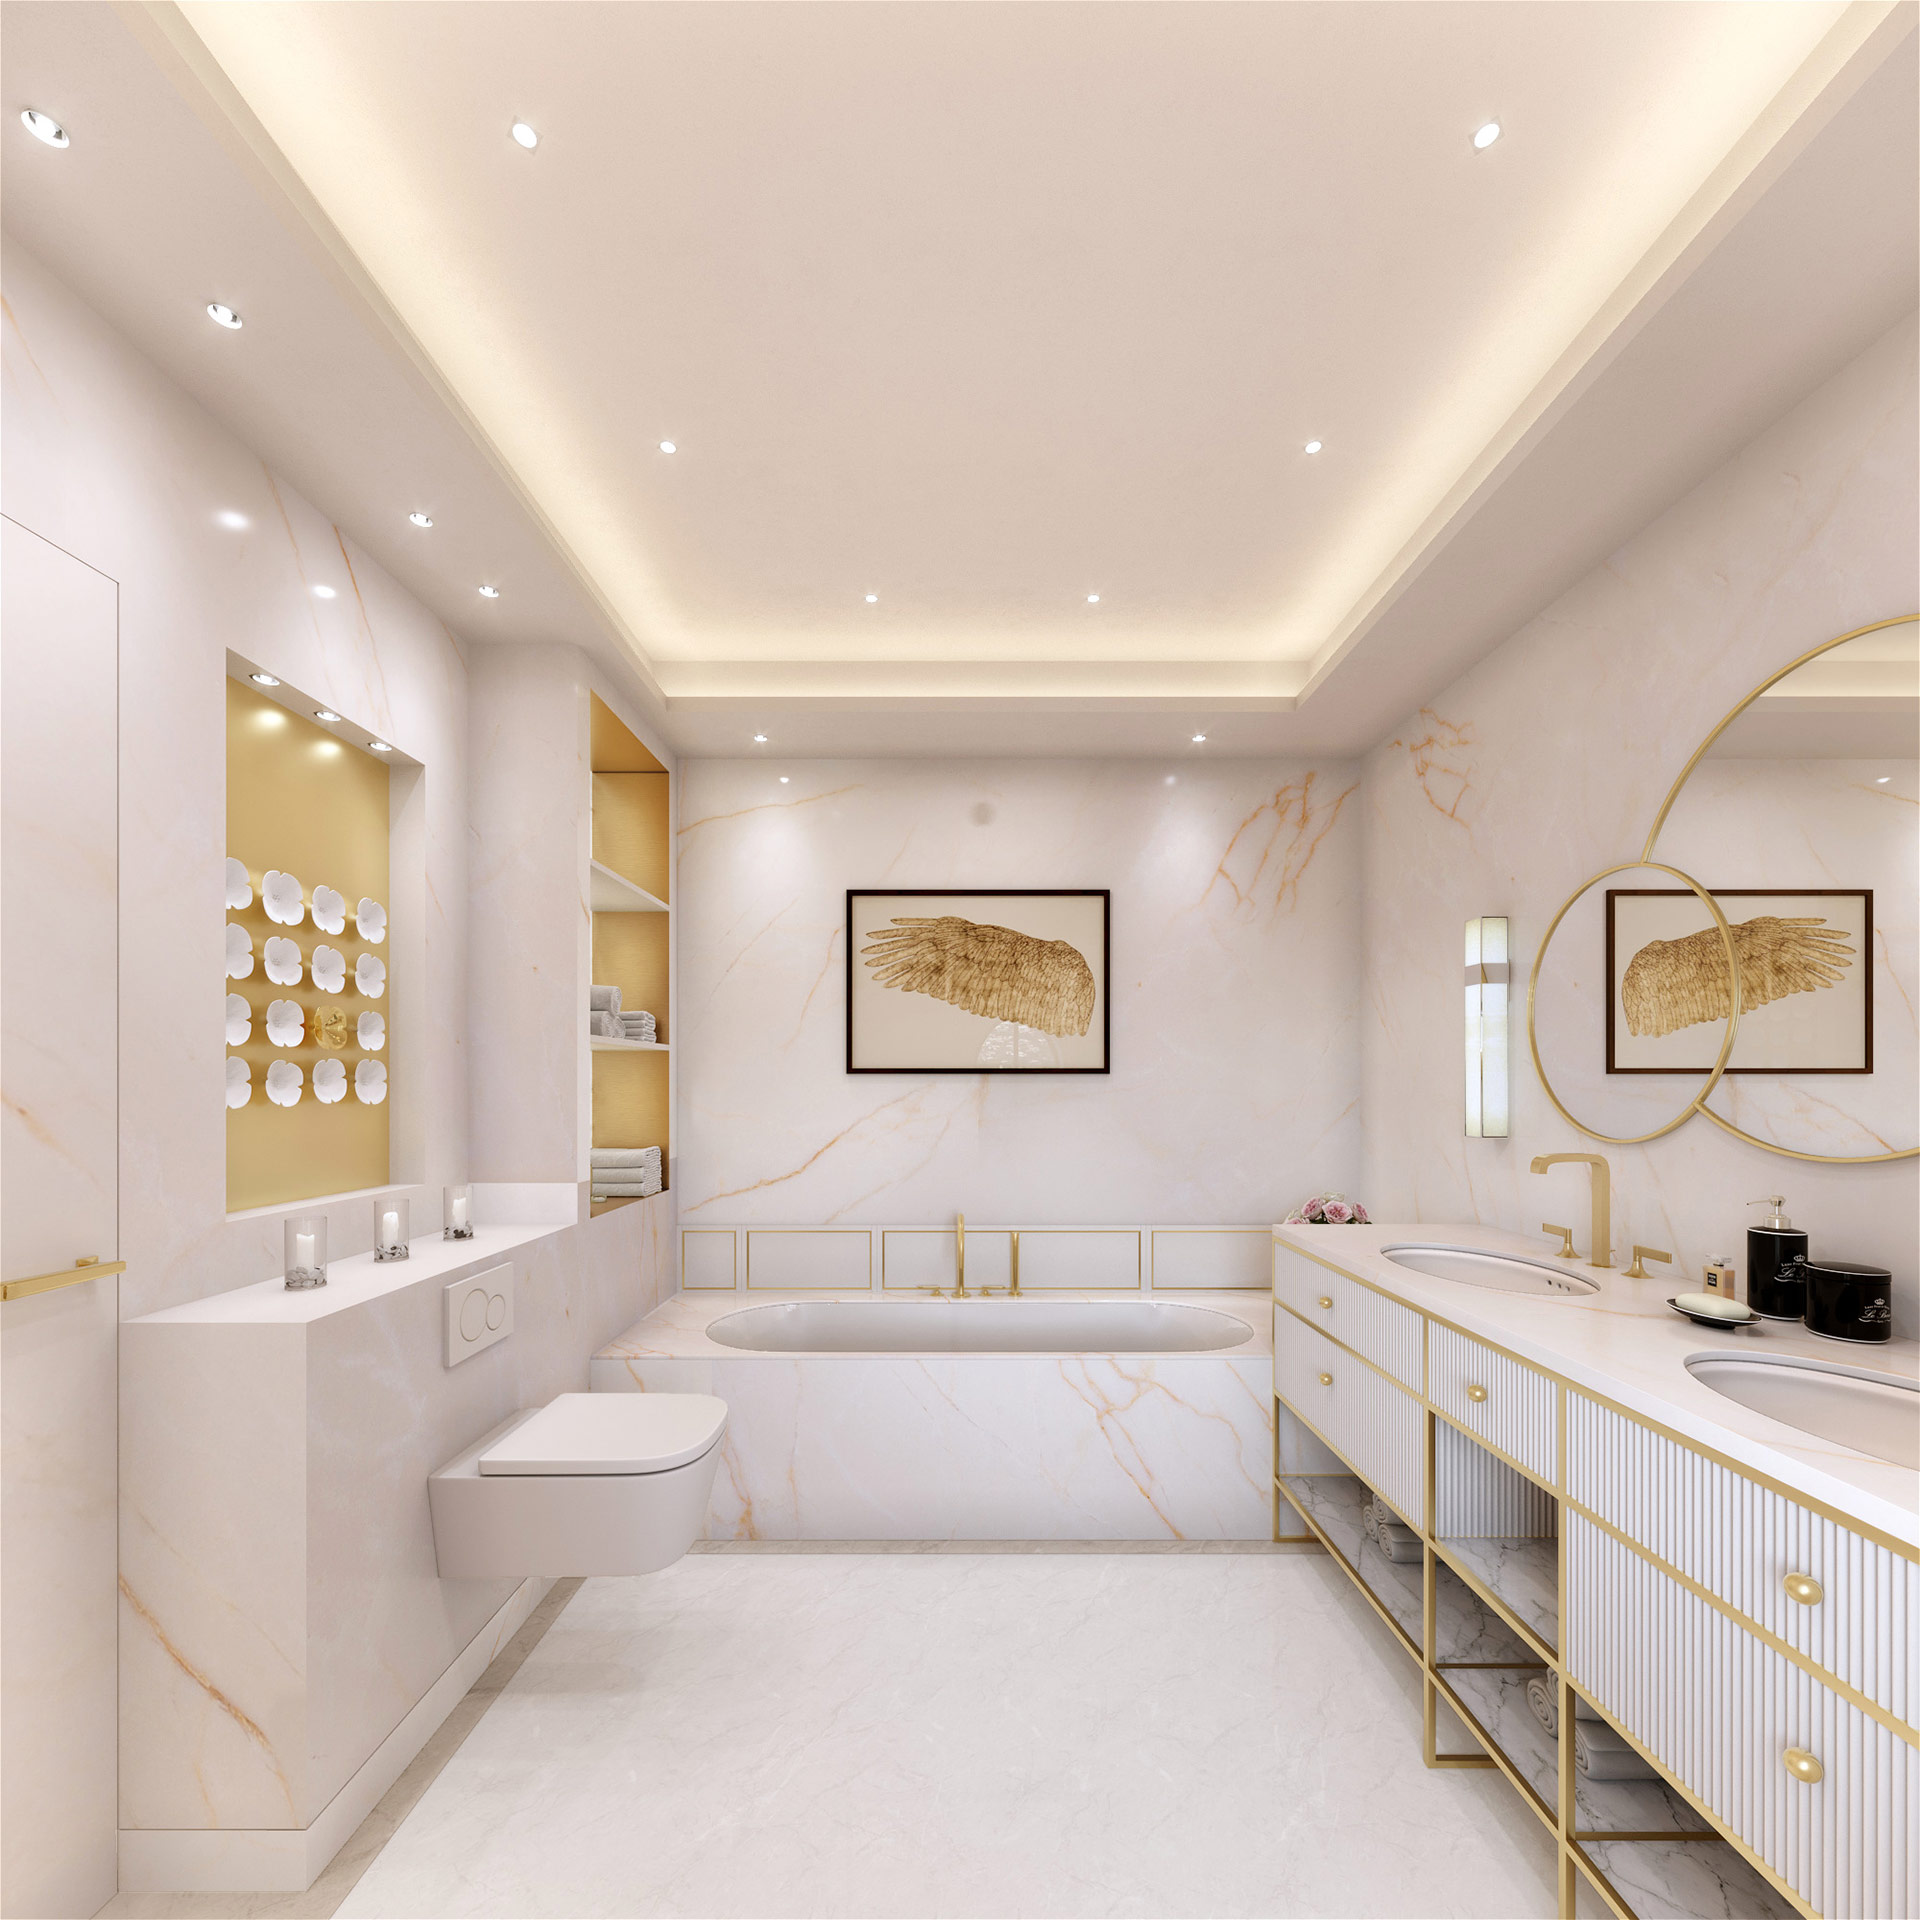 3D interior perspective of a luxurious bathroom in a villa